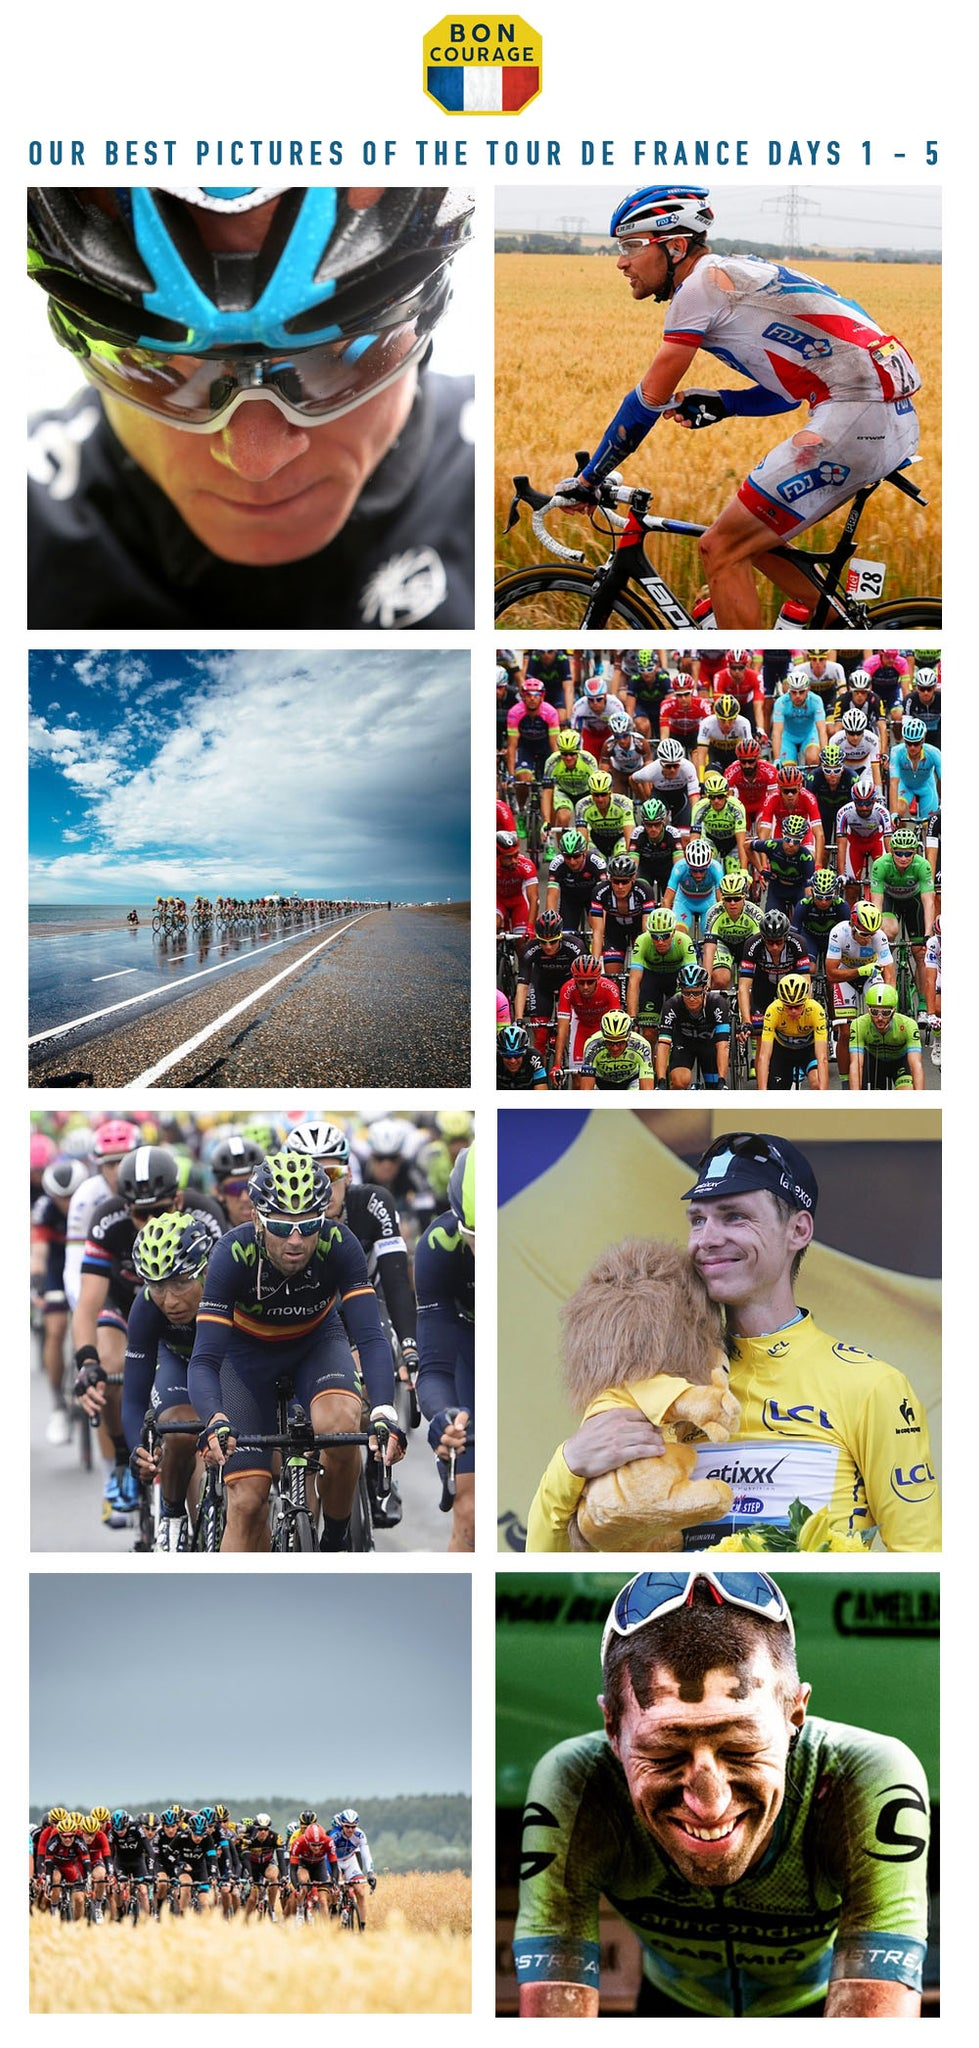 DAY 6 - Our favourite photos of the Tour de France so far